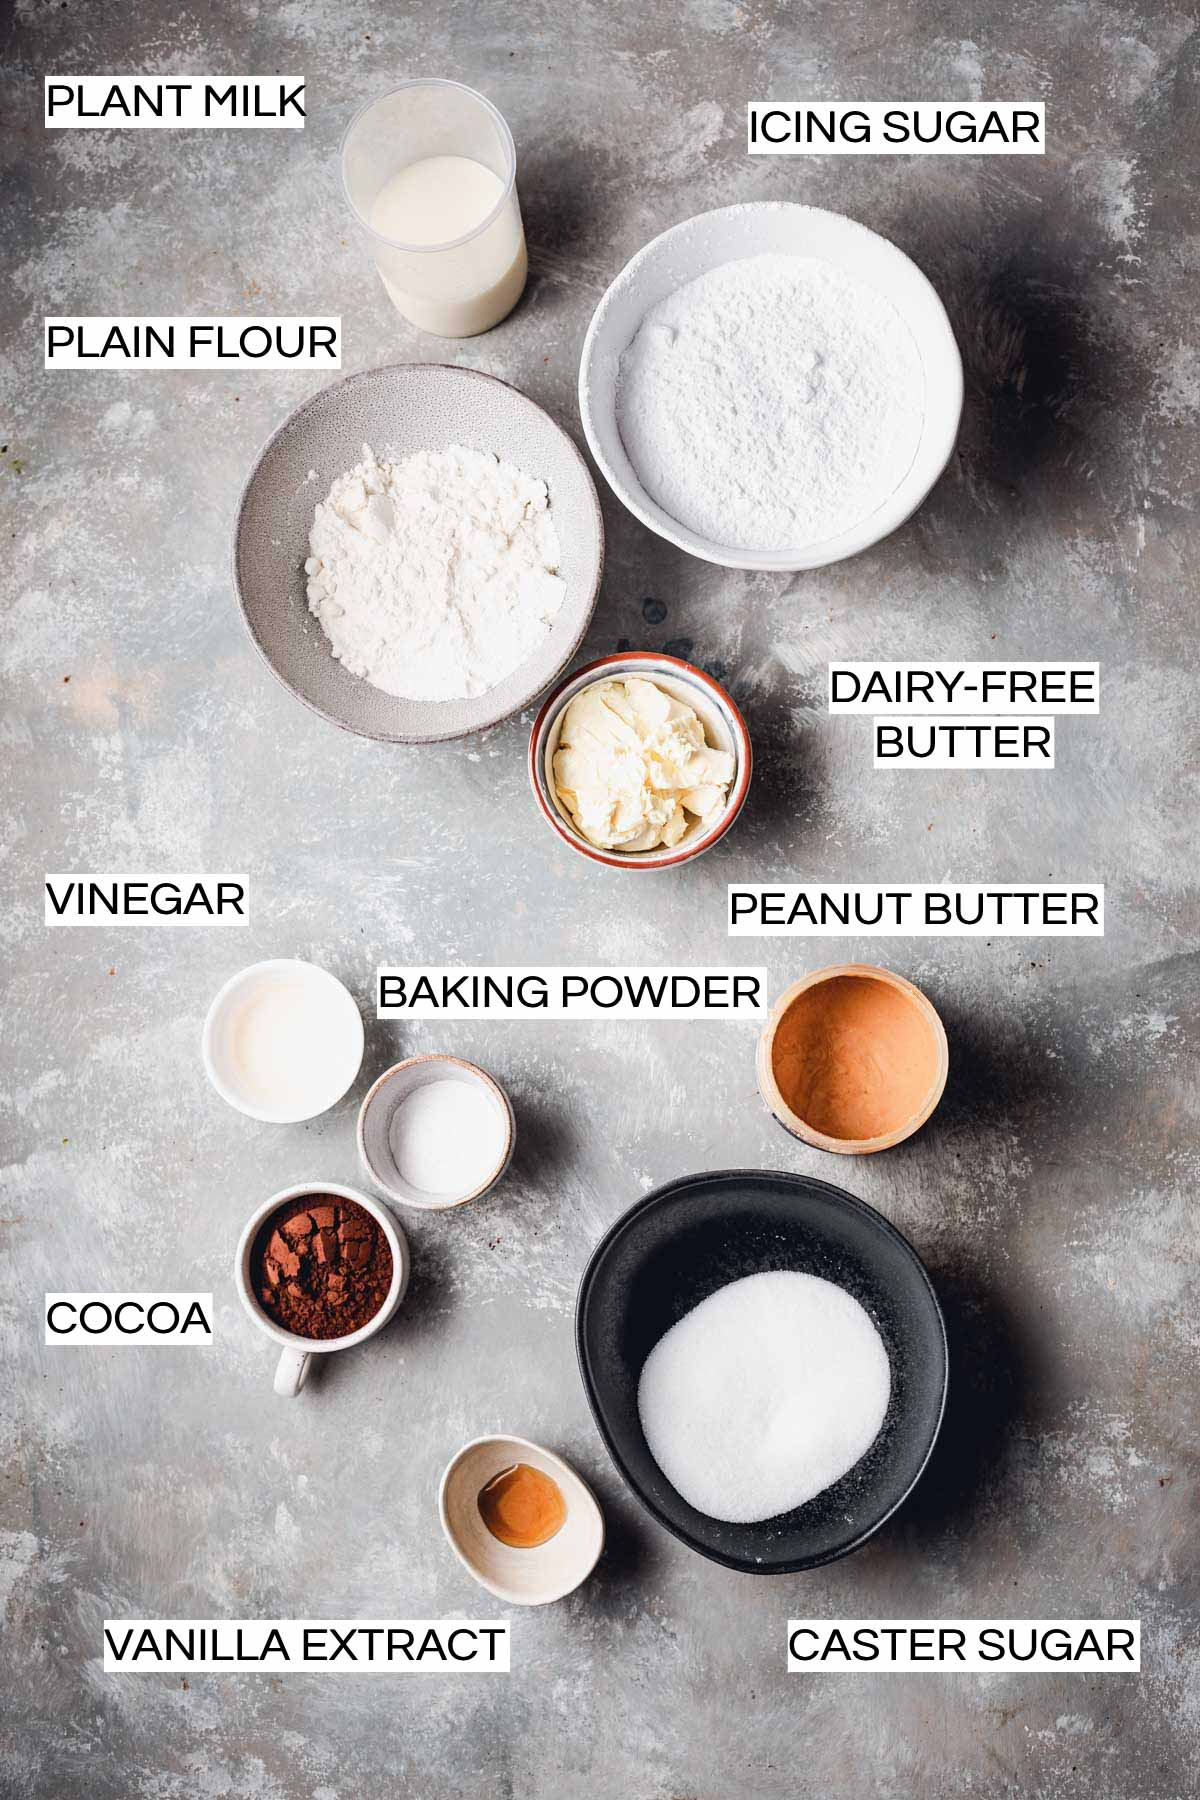 Various ingredients needed to bake cupcakes laid out in bowls on a flat surface.